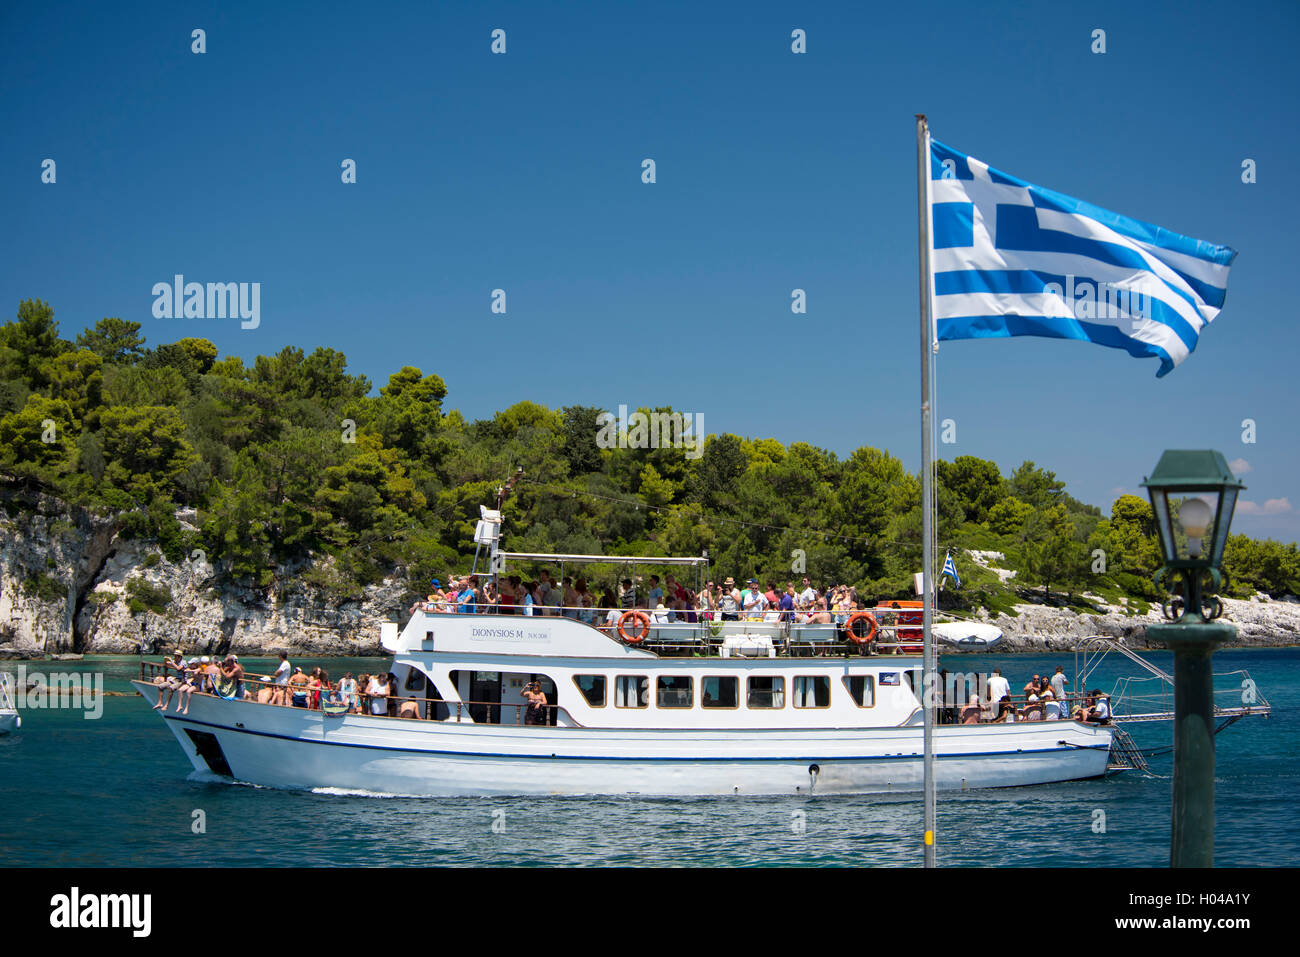 An excursion boat full of tourists heading into Gaios Harbour, Paxos, The Ionian Islands, Greece, Europe - Stock Image